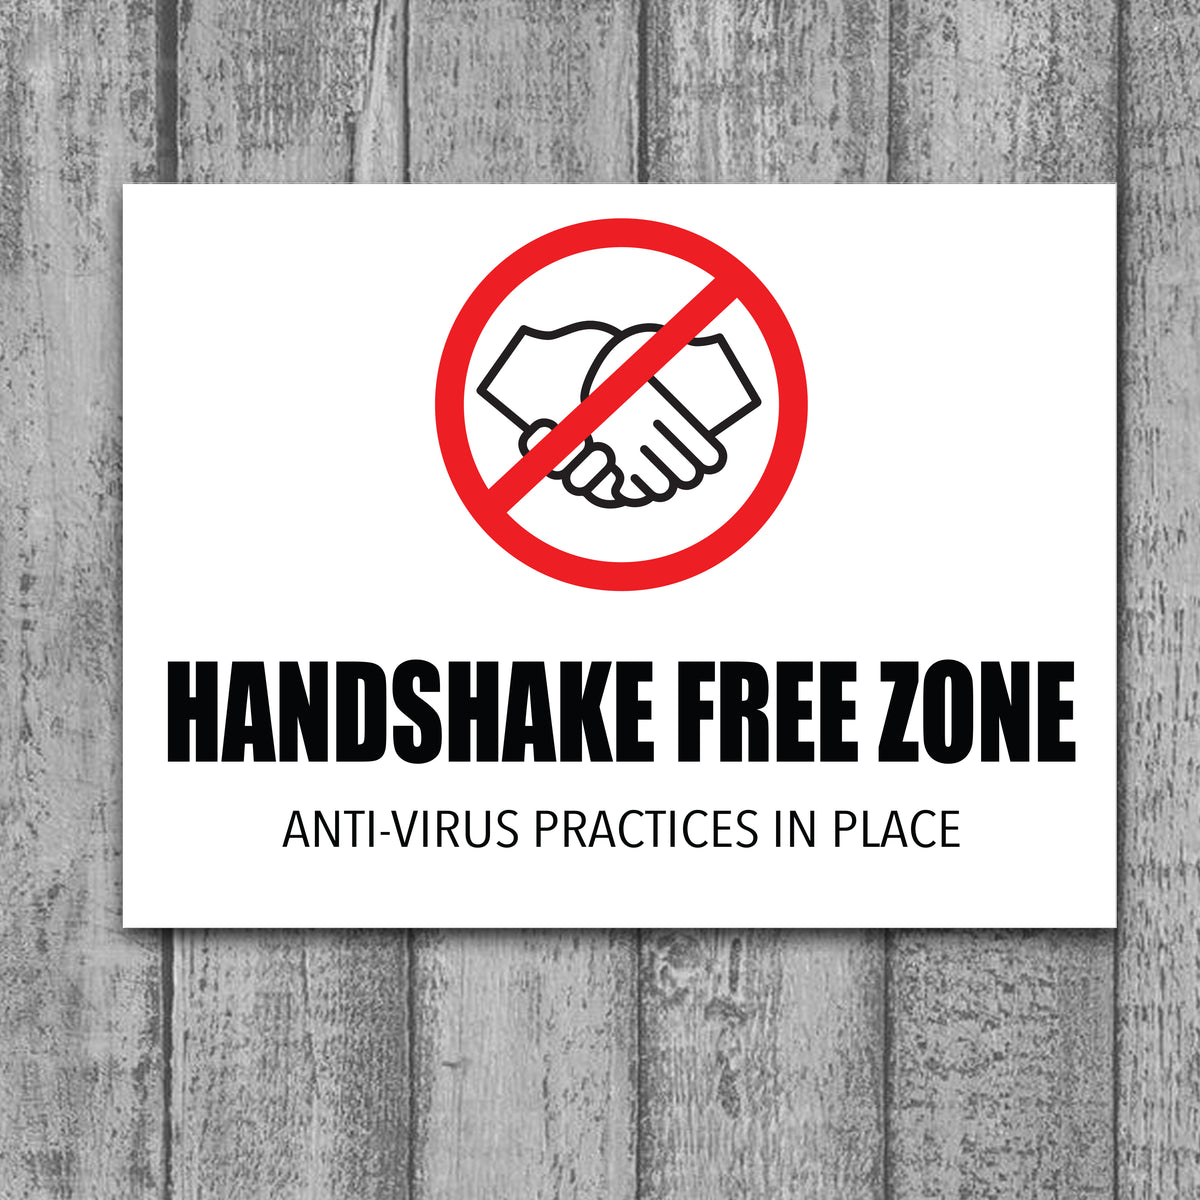 Handshake Free Zone - COVID-19 Prevention Signage